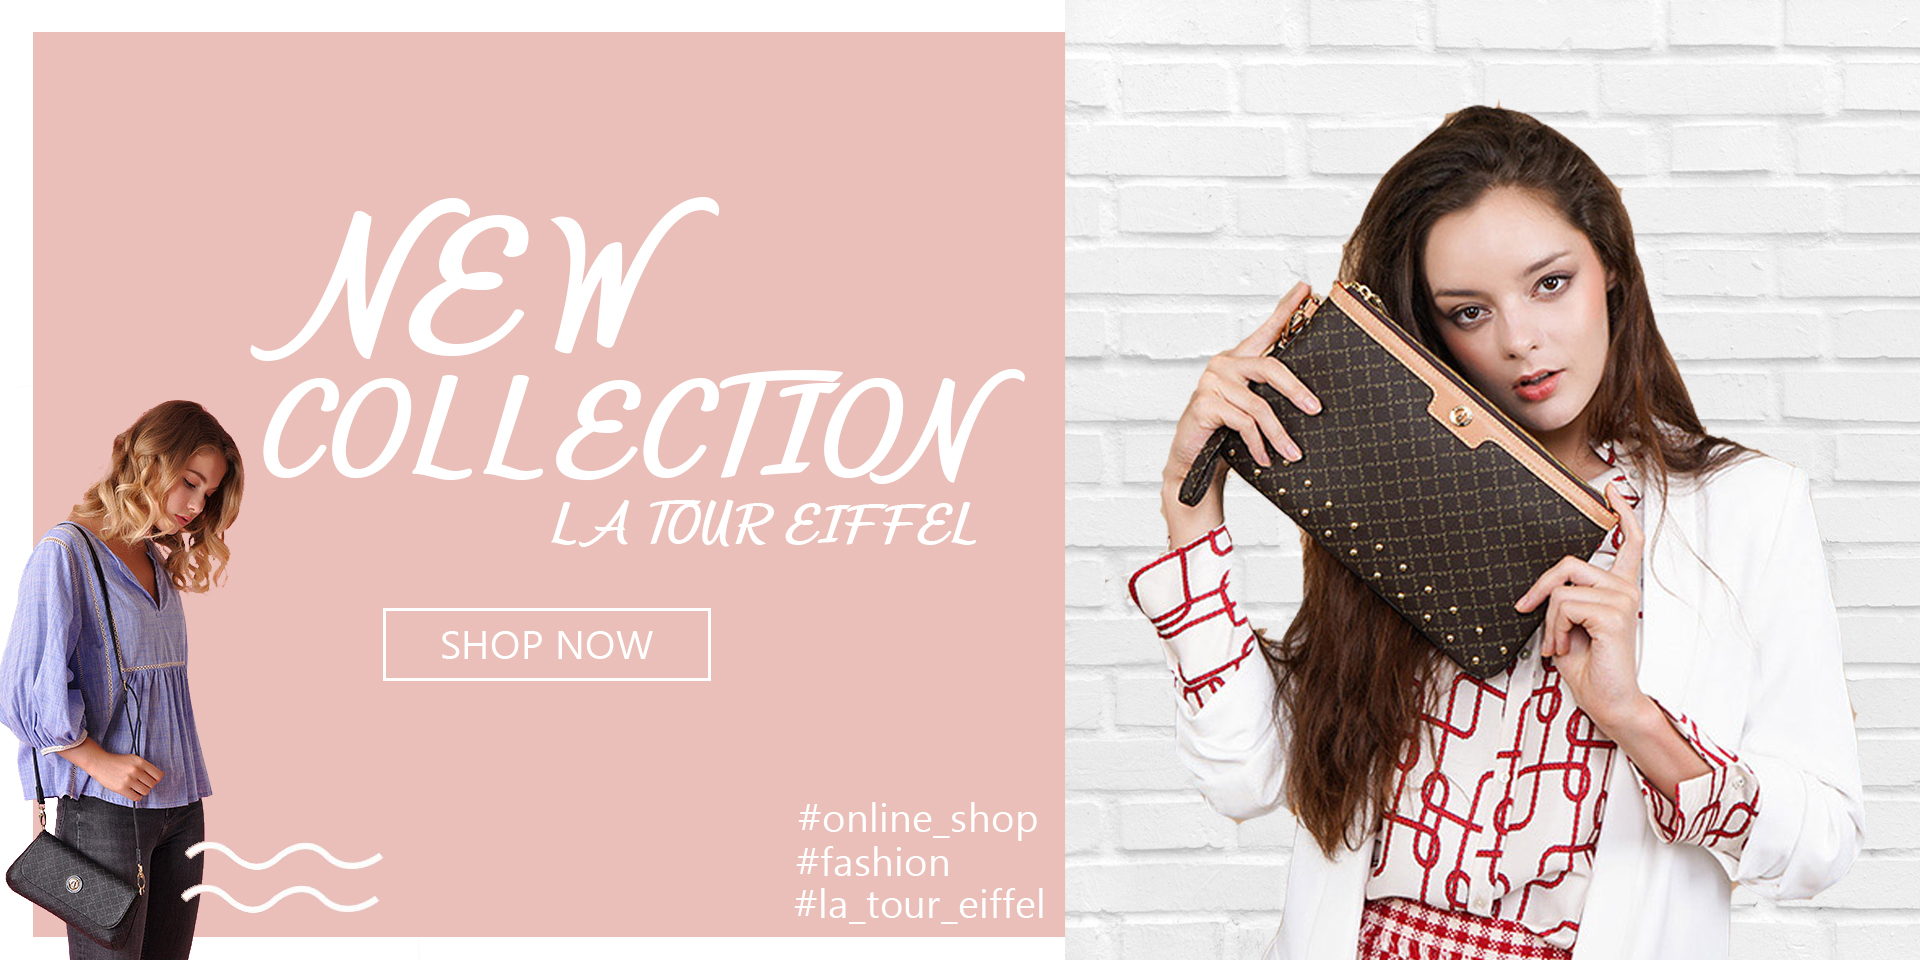 NEW COLLECTION LA TOUR EIFFEL ΤΣΑΝΤΕΣ 4BAG